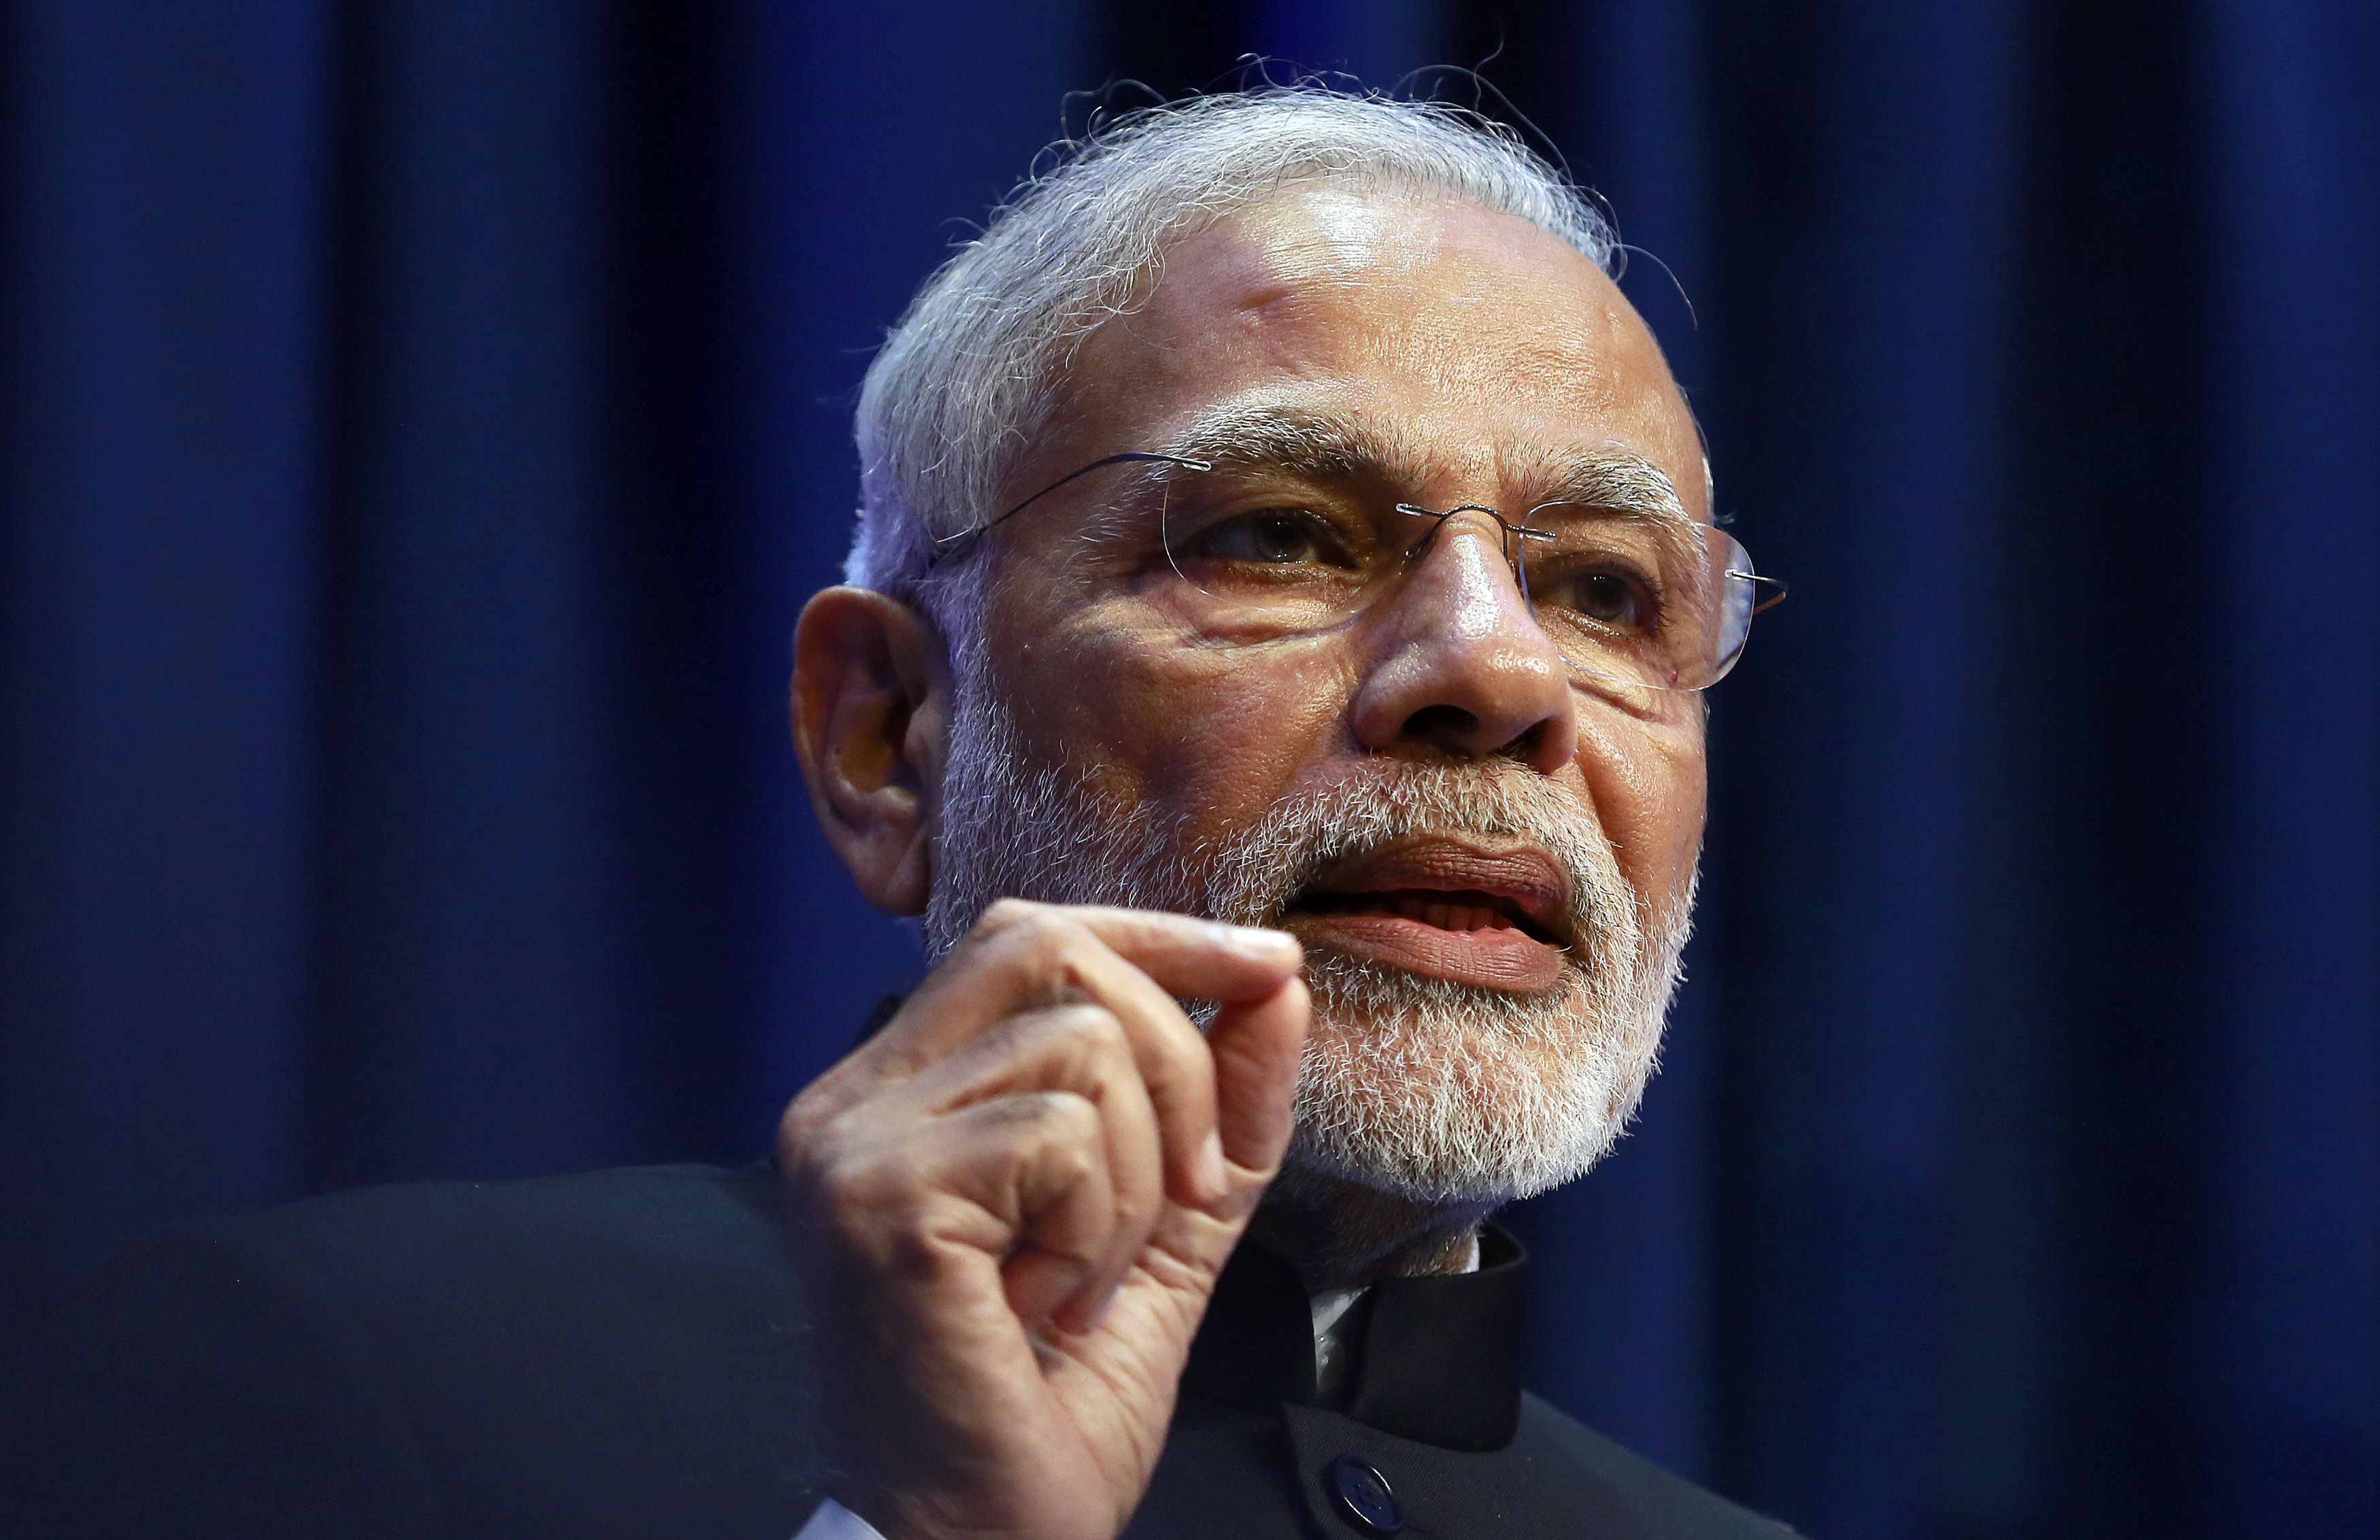 India's Prime Minister Narendra Modi speaks at a news conference in Government Buildings in Dublin September 23, 2015.